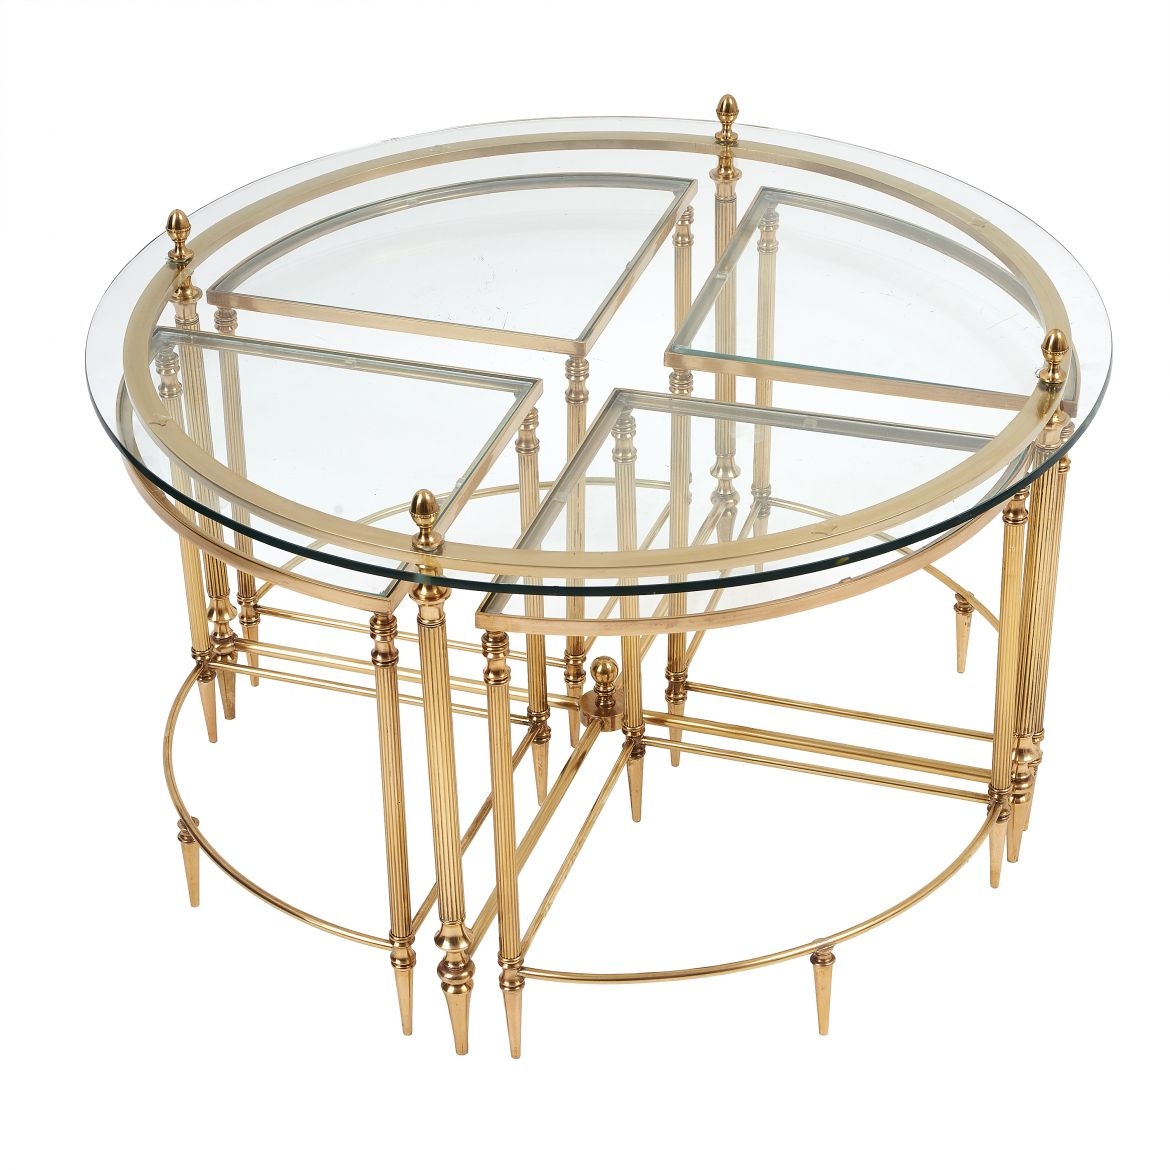 Brass & Glass Nest of Coffee Tables